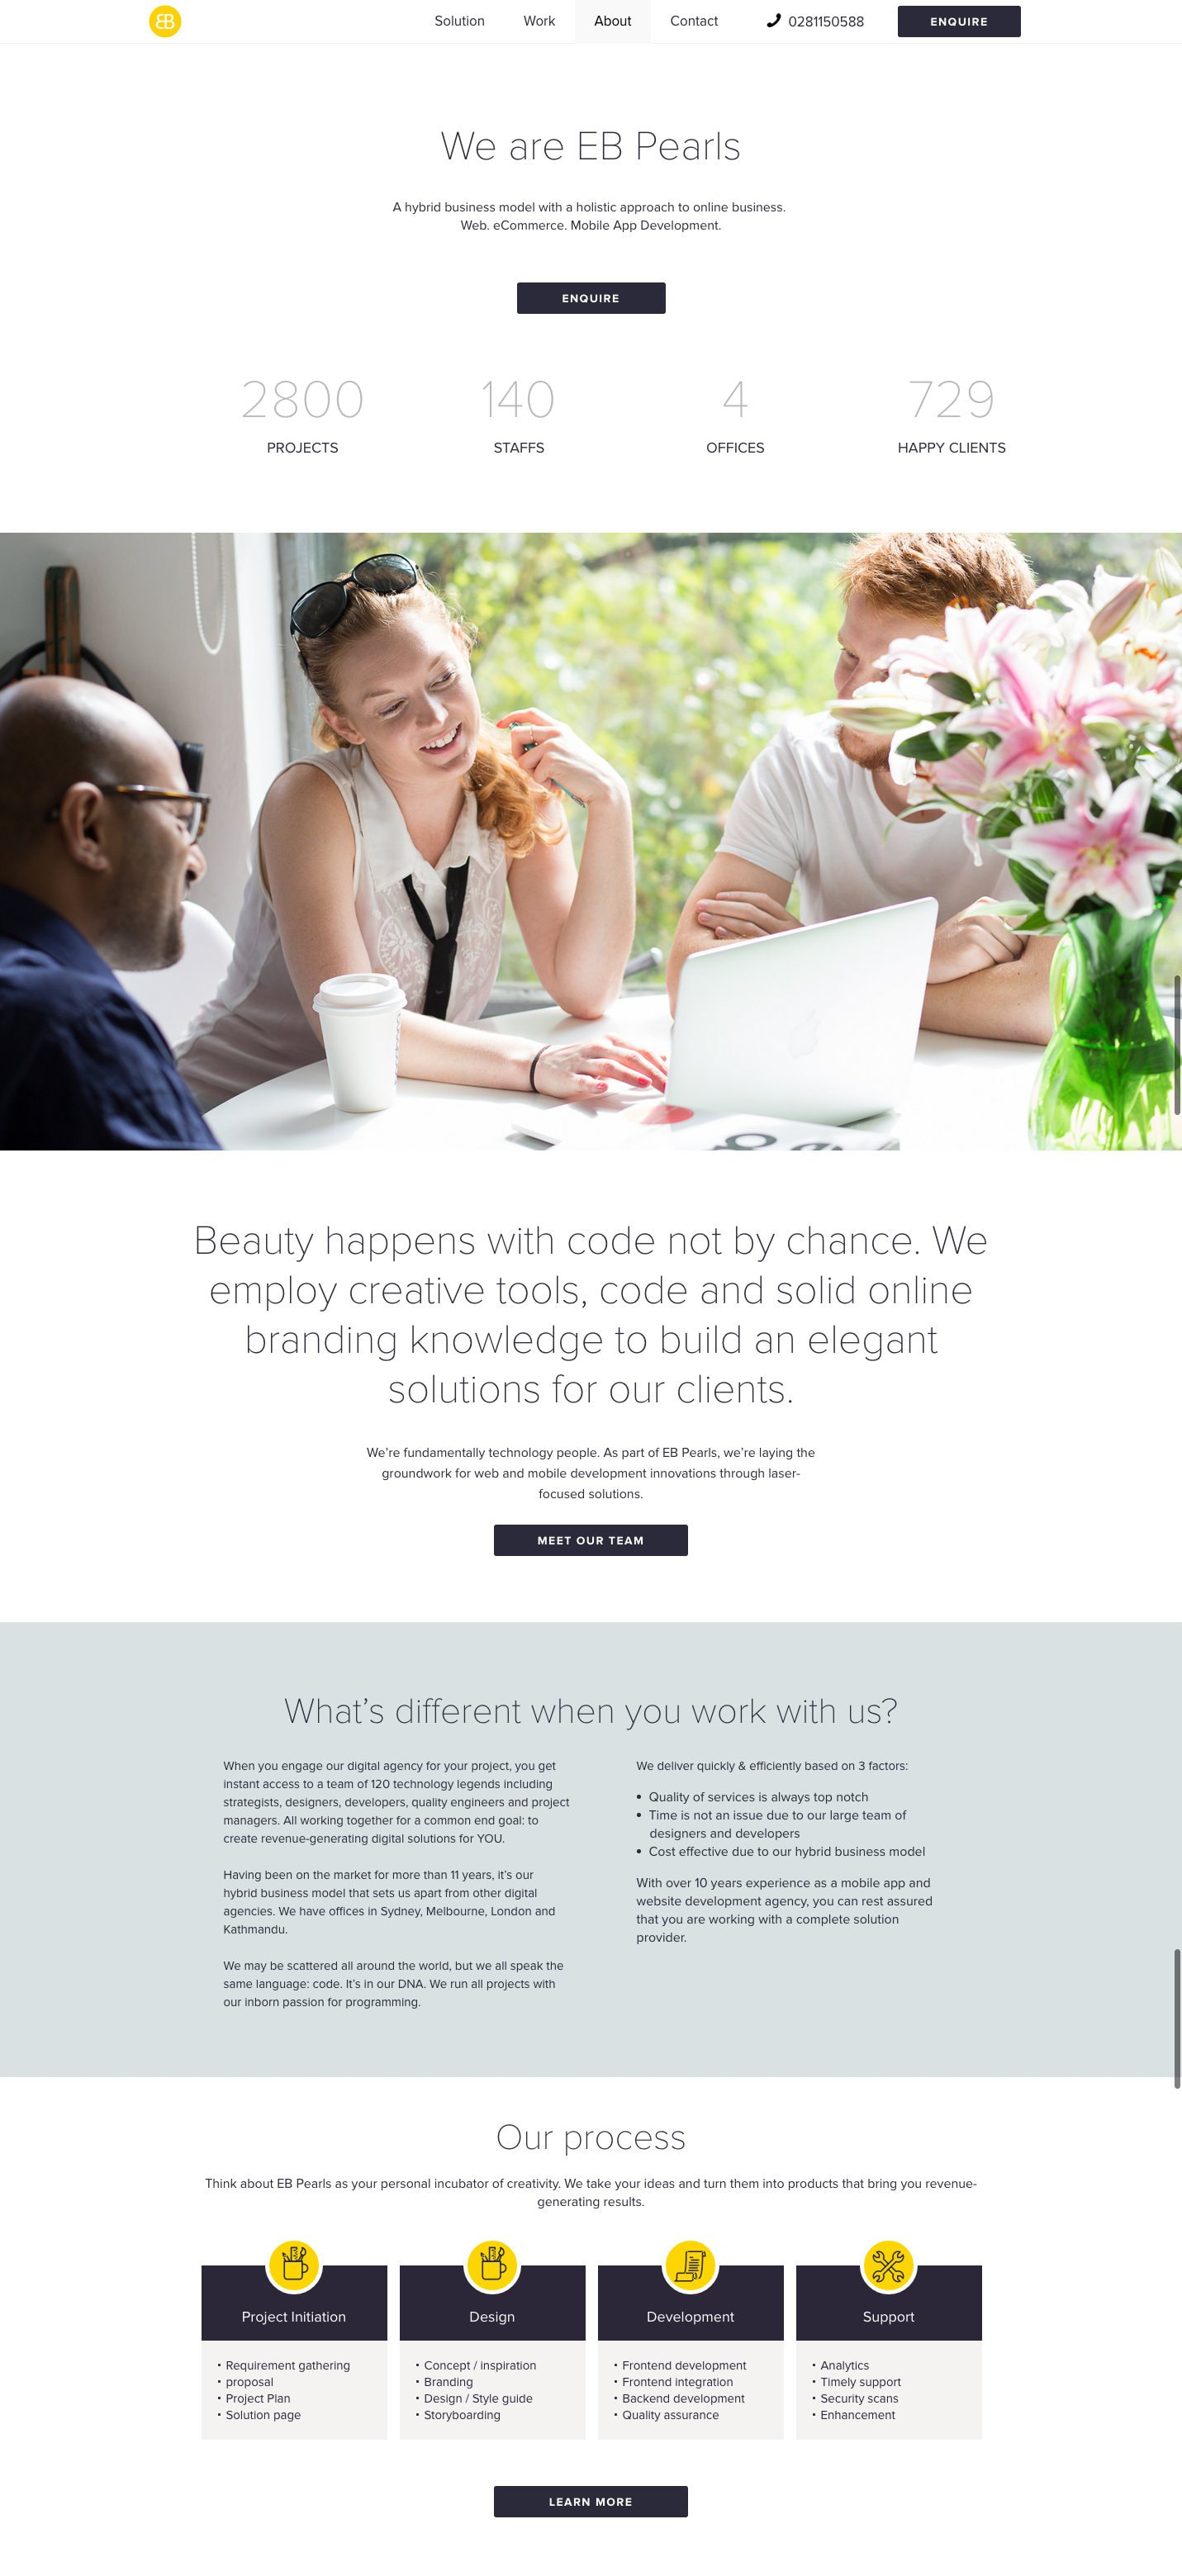 about us website examples